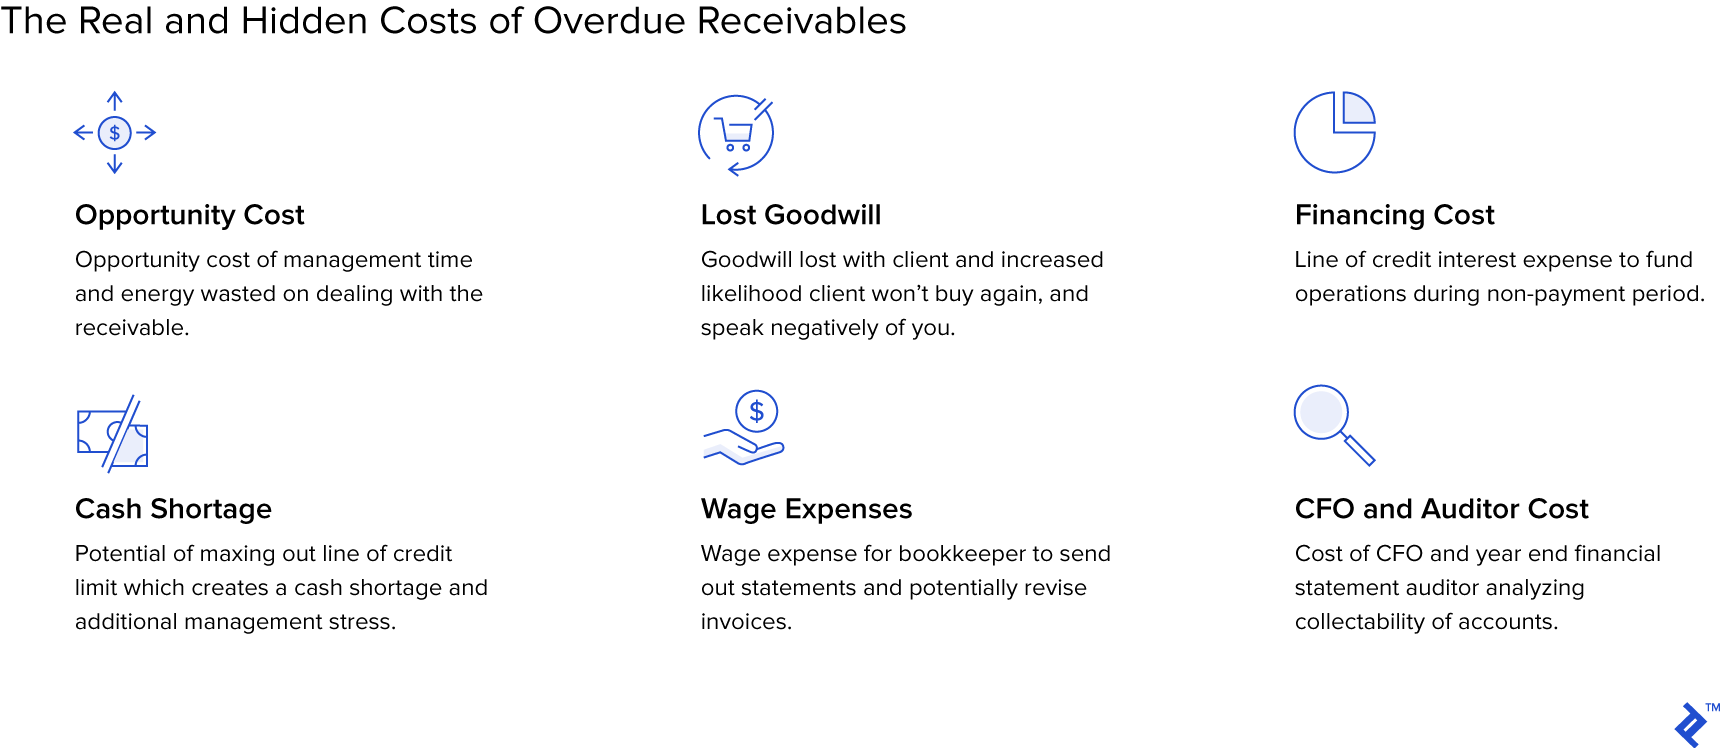 Graphic showing the real and hidden costs of overdue receivables.